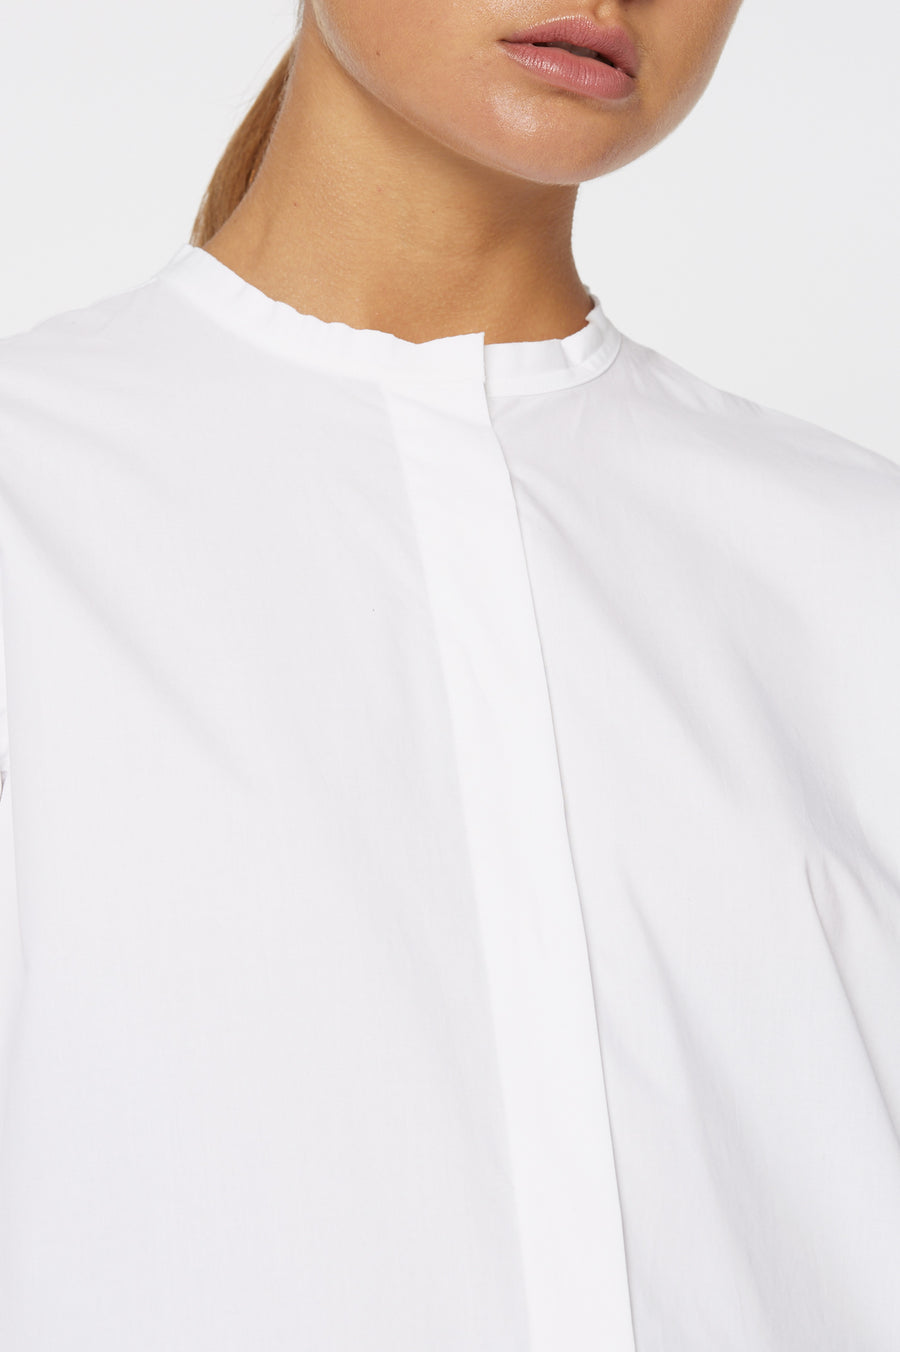 CUT EDGE GRANDPA SHIRT, oversized tailored shirt, button down, round collarless neckline. Color White